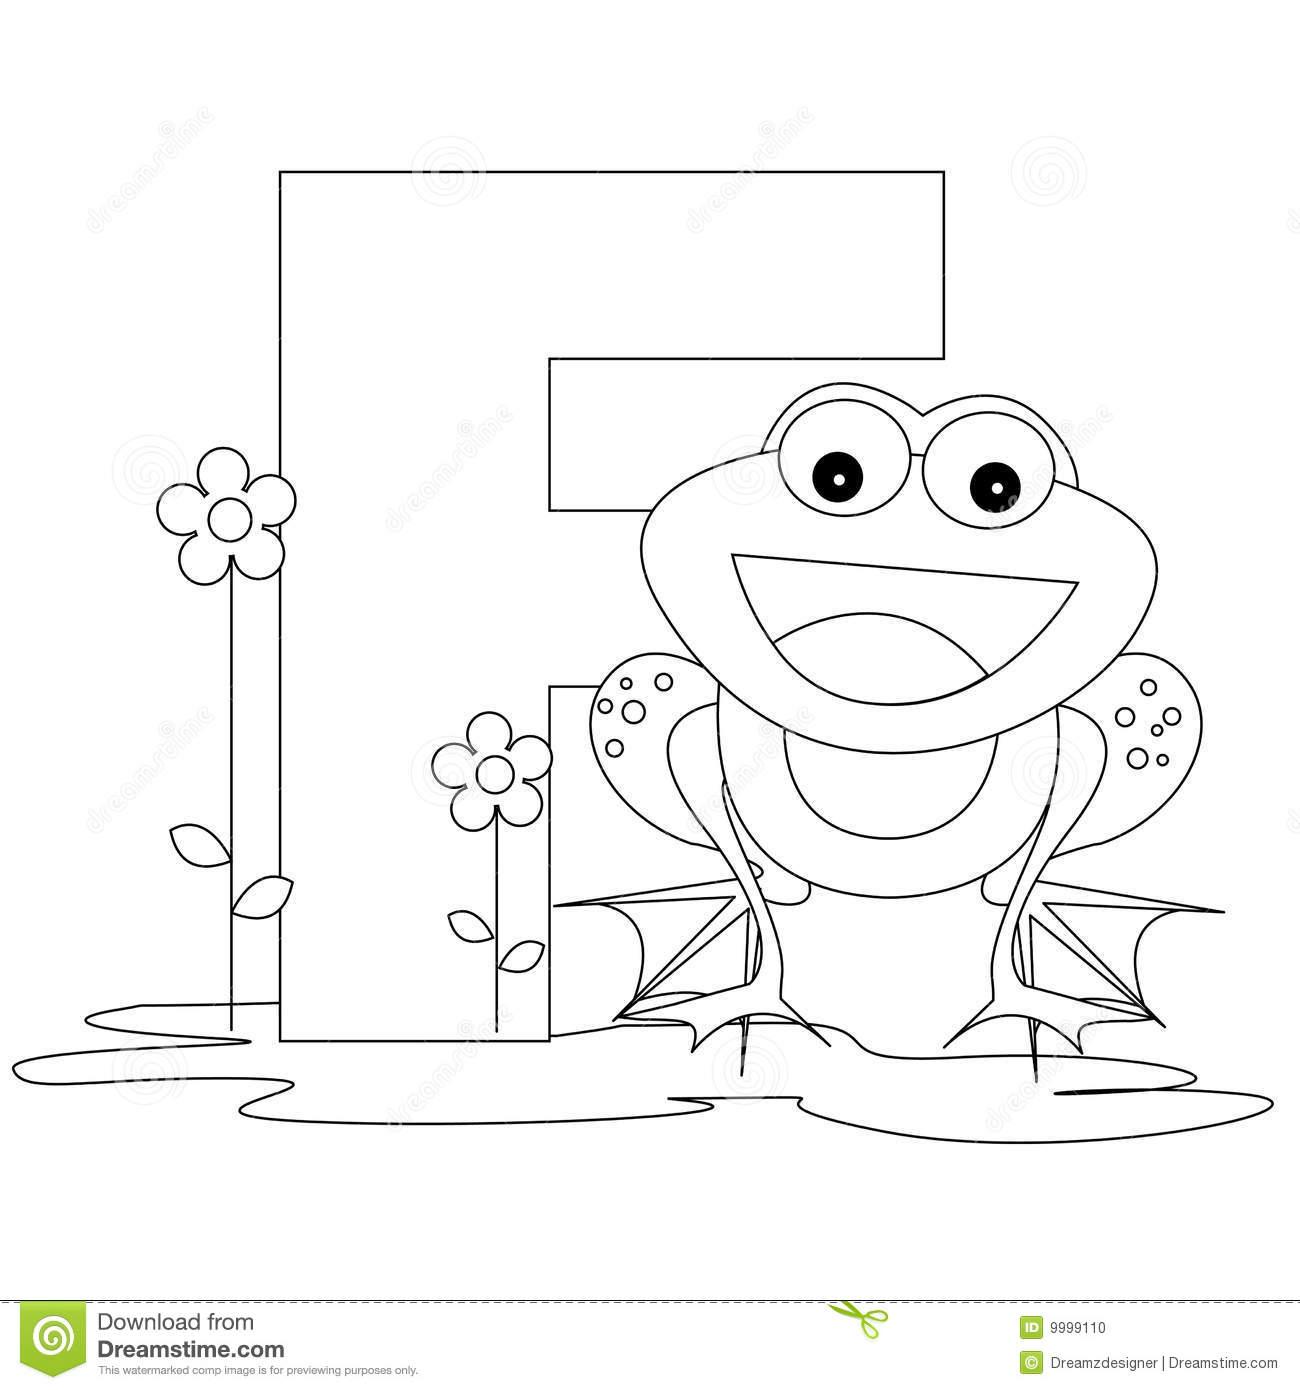 Alphabet i coloring pages - Animal Alphabet F Coloring Page Stock Photo